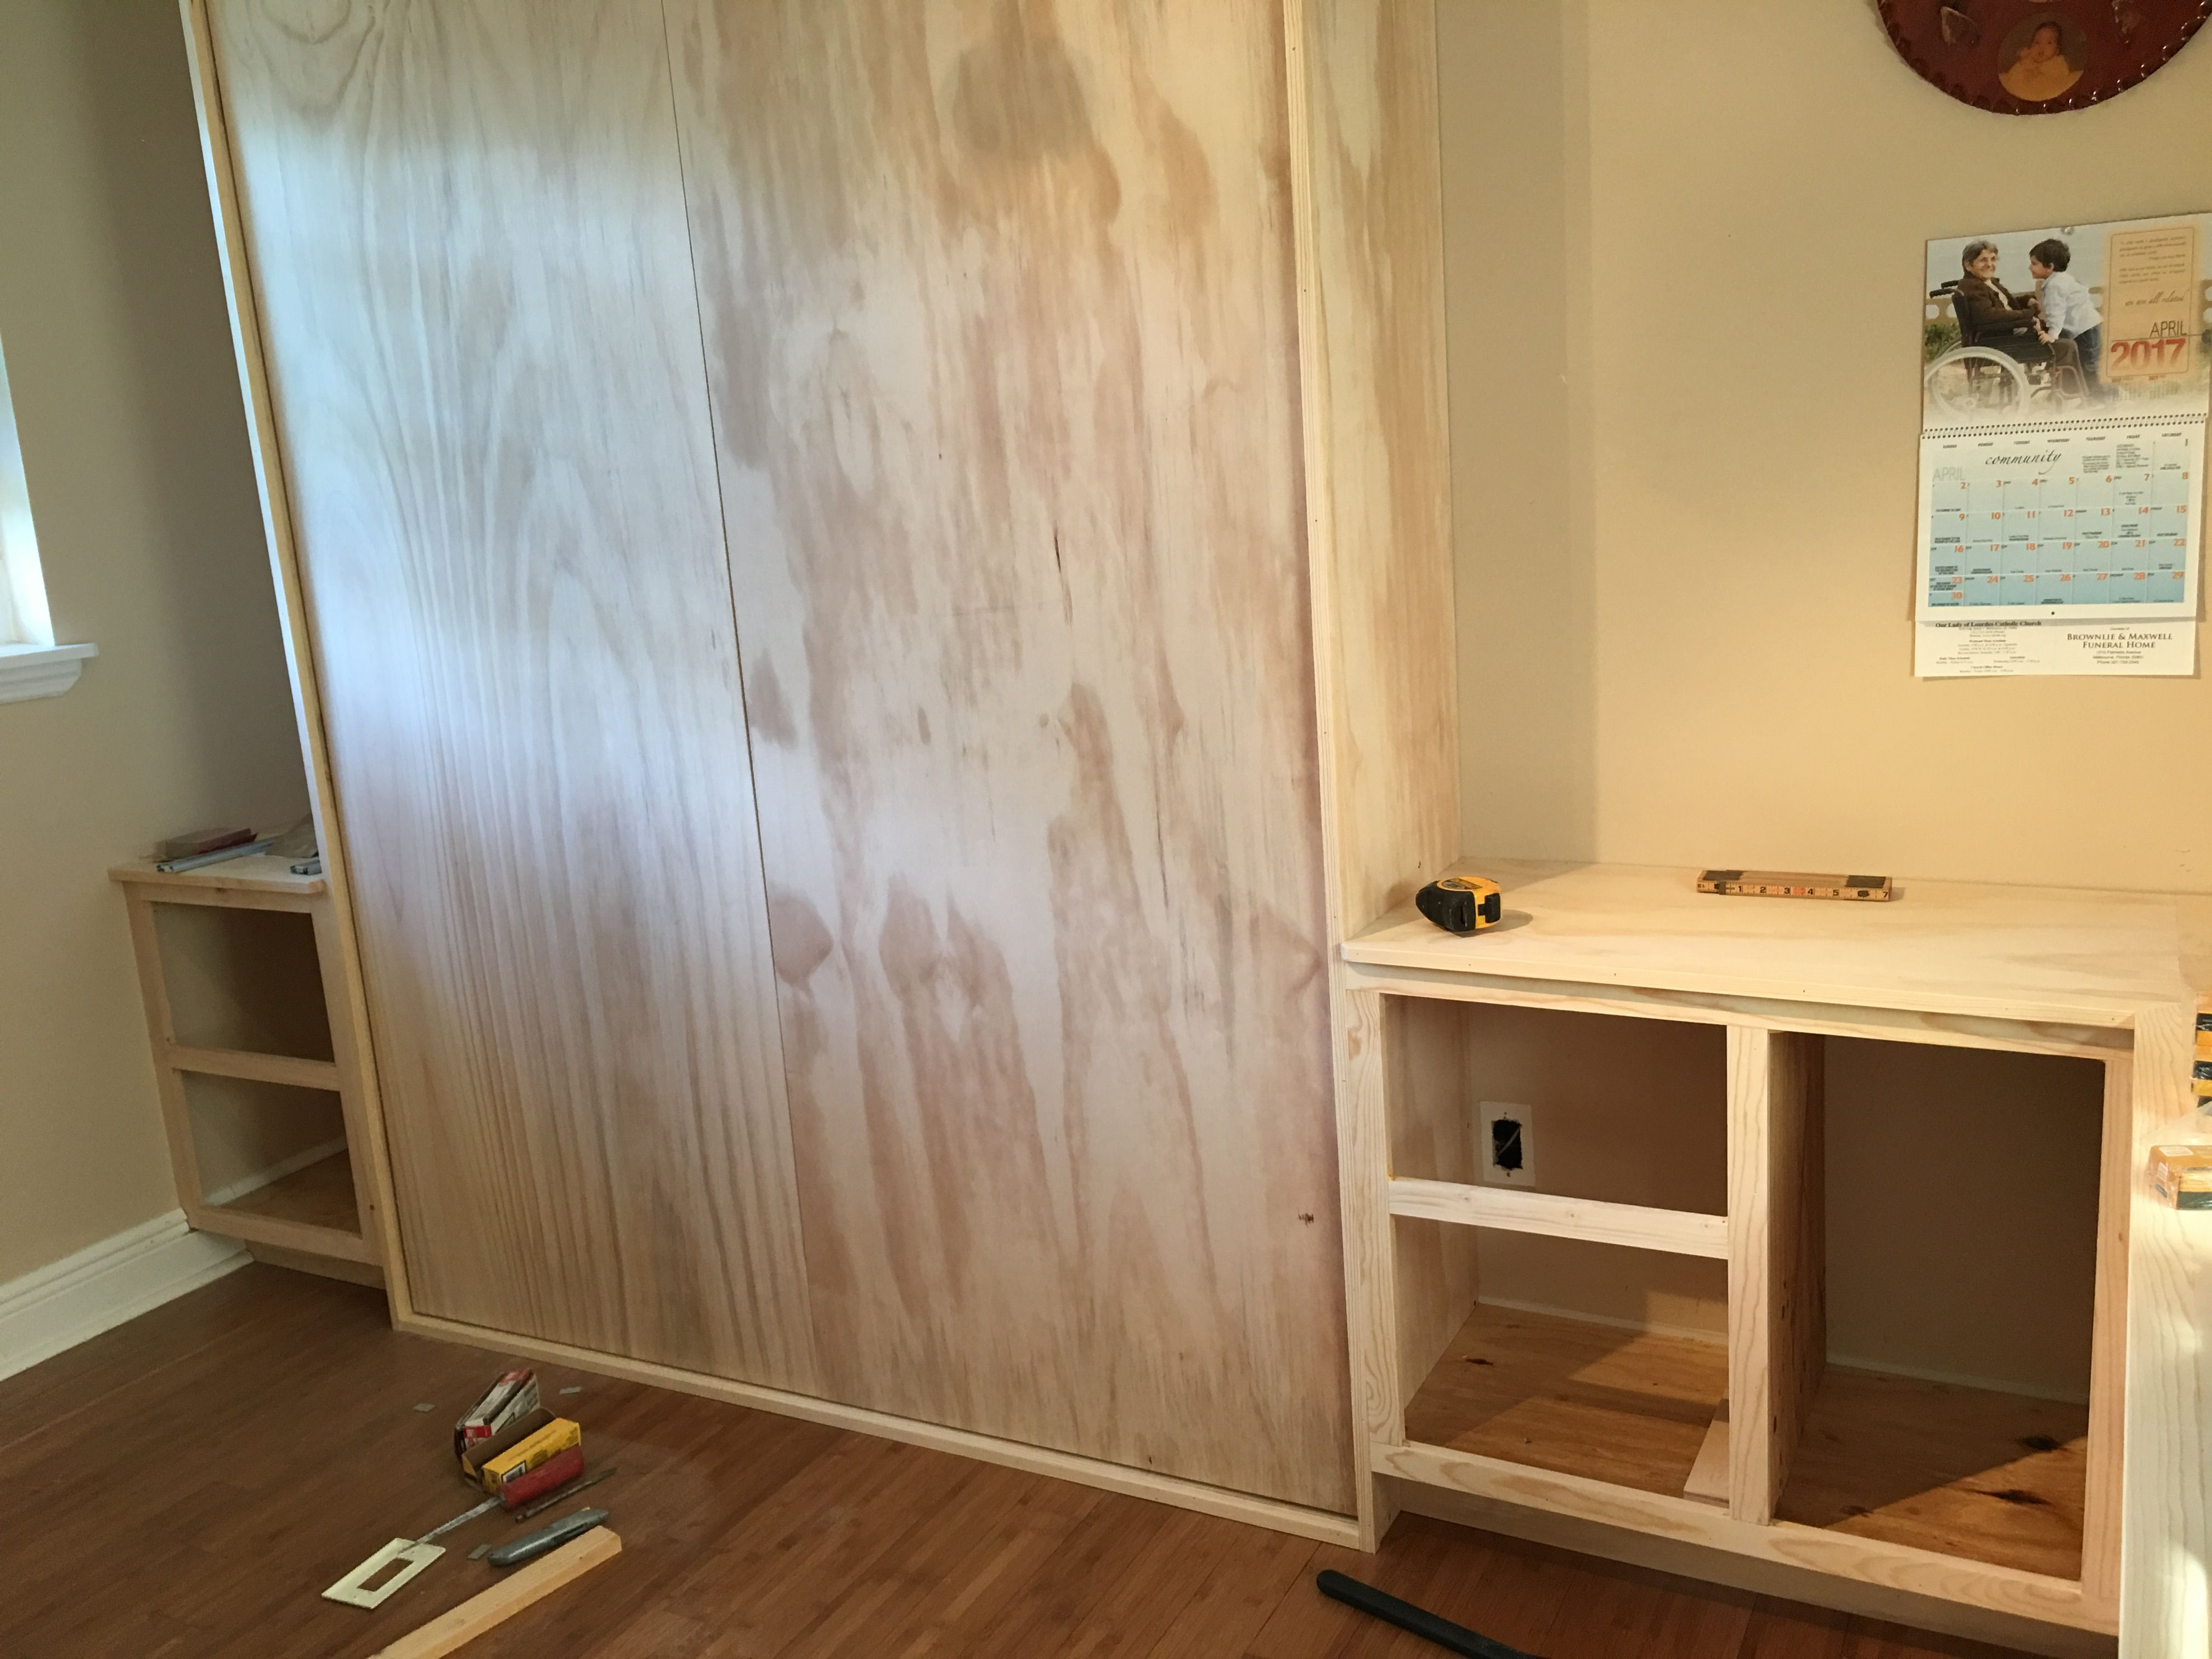 I Semble Vertical Mount Murphy Bed Hardware Kits With Mattress